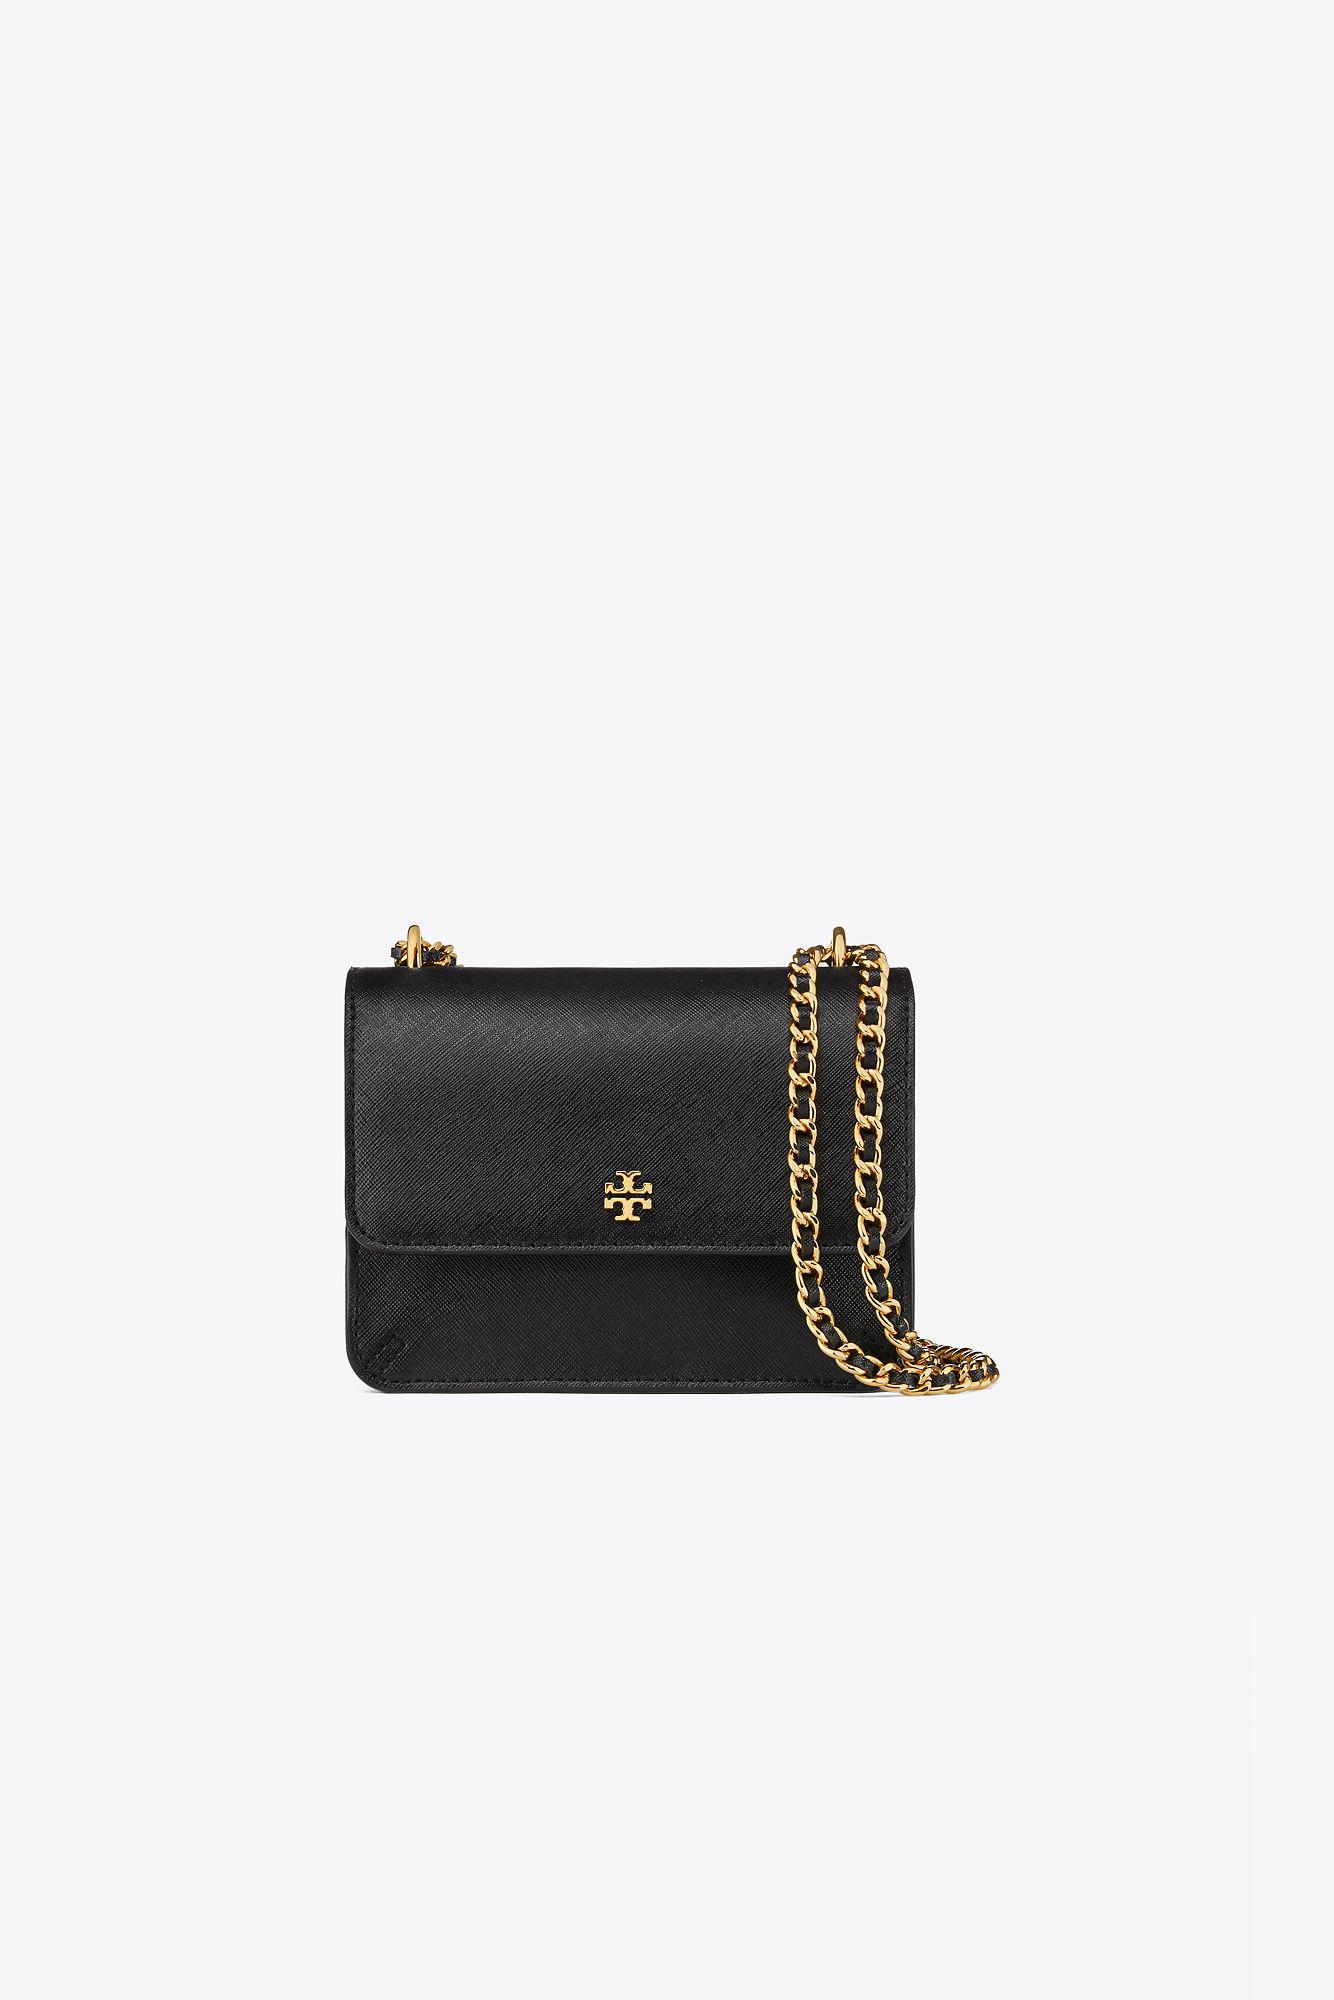 9179b50561d Lyst - Tory Burch Robinson Mini Saffiano Leather Shoulder Bag in Black